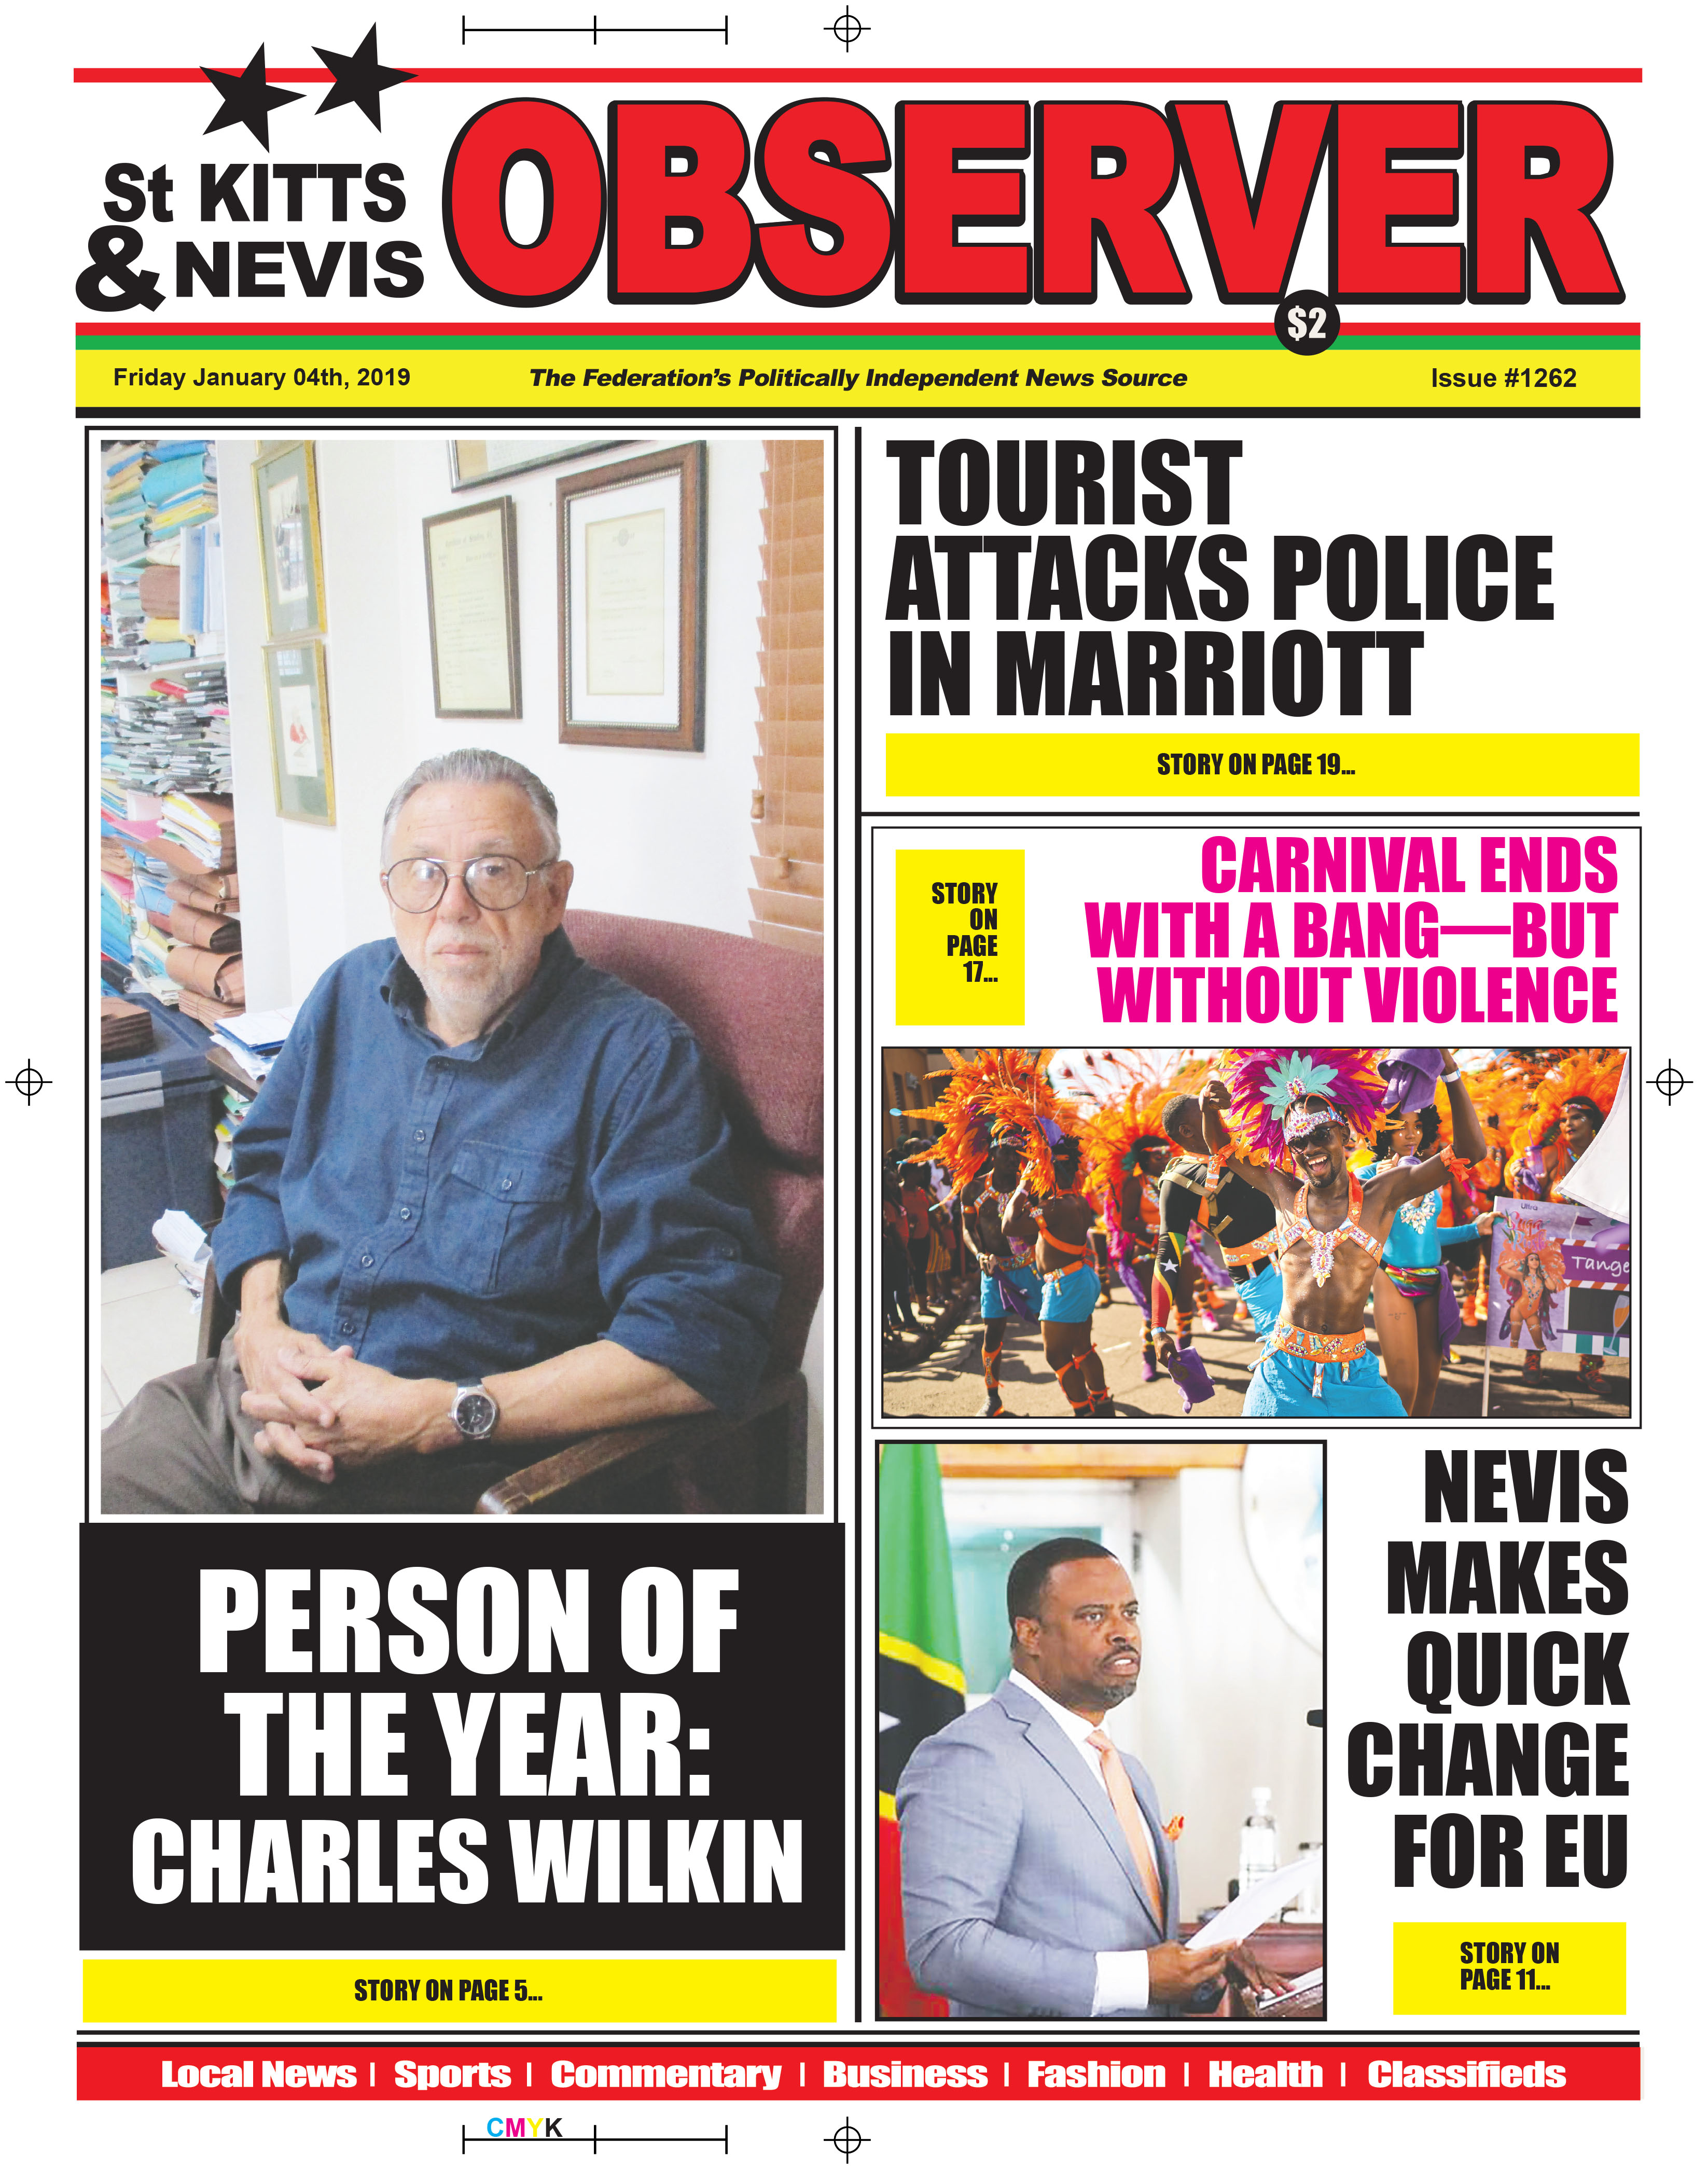 Newspaper Cover for 04th January 2019  The St Kitts